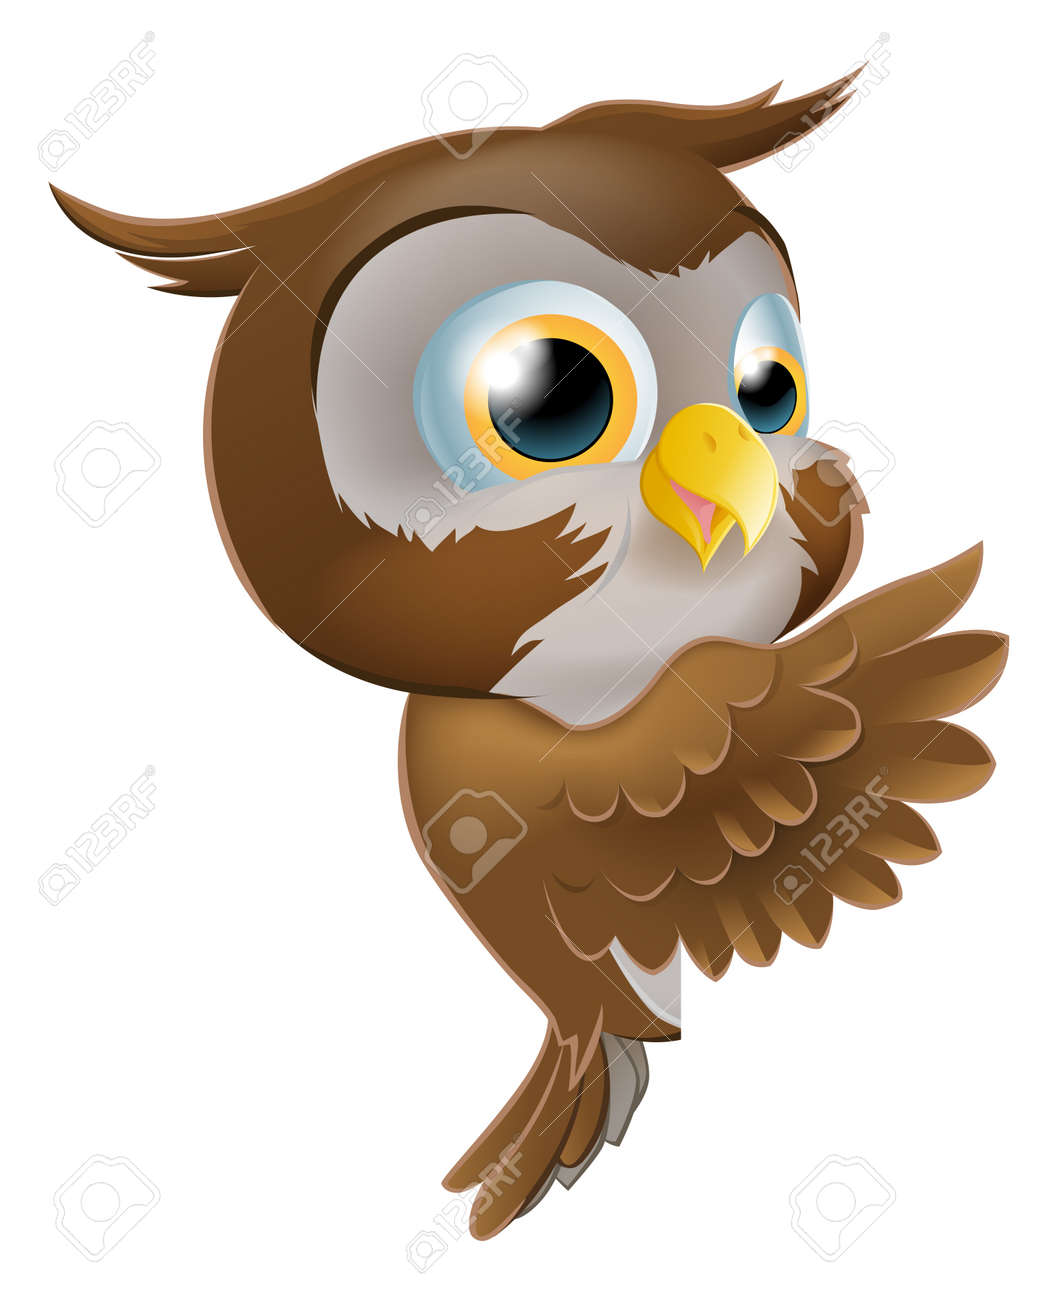 An illustration of a cute cartoon owl character peeking round from behind a sign and pointing or showing what it says Stock Vector - 17682646